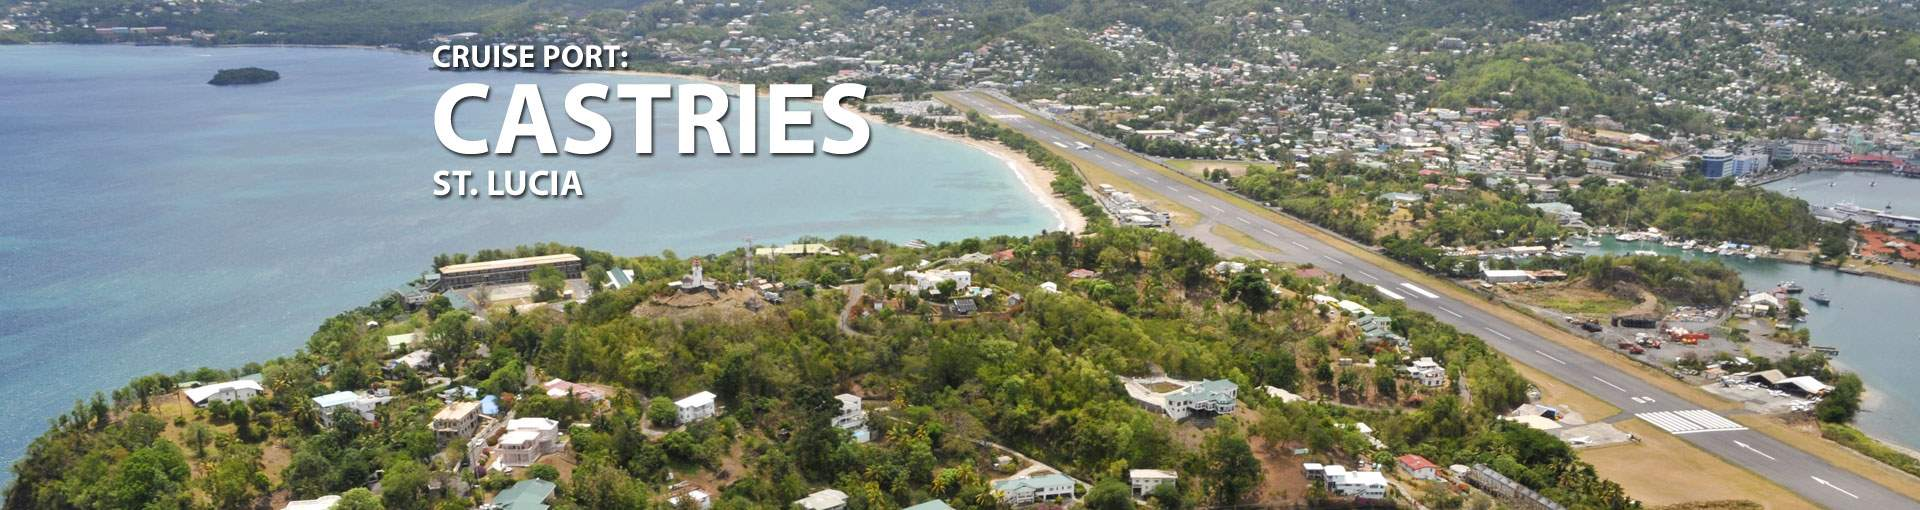 Cruises to Castries, St. Lucia Cruise Port